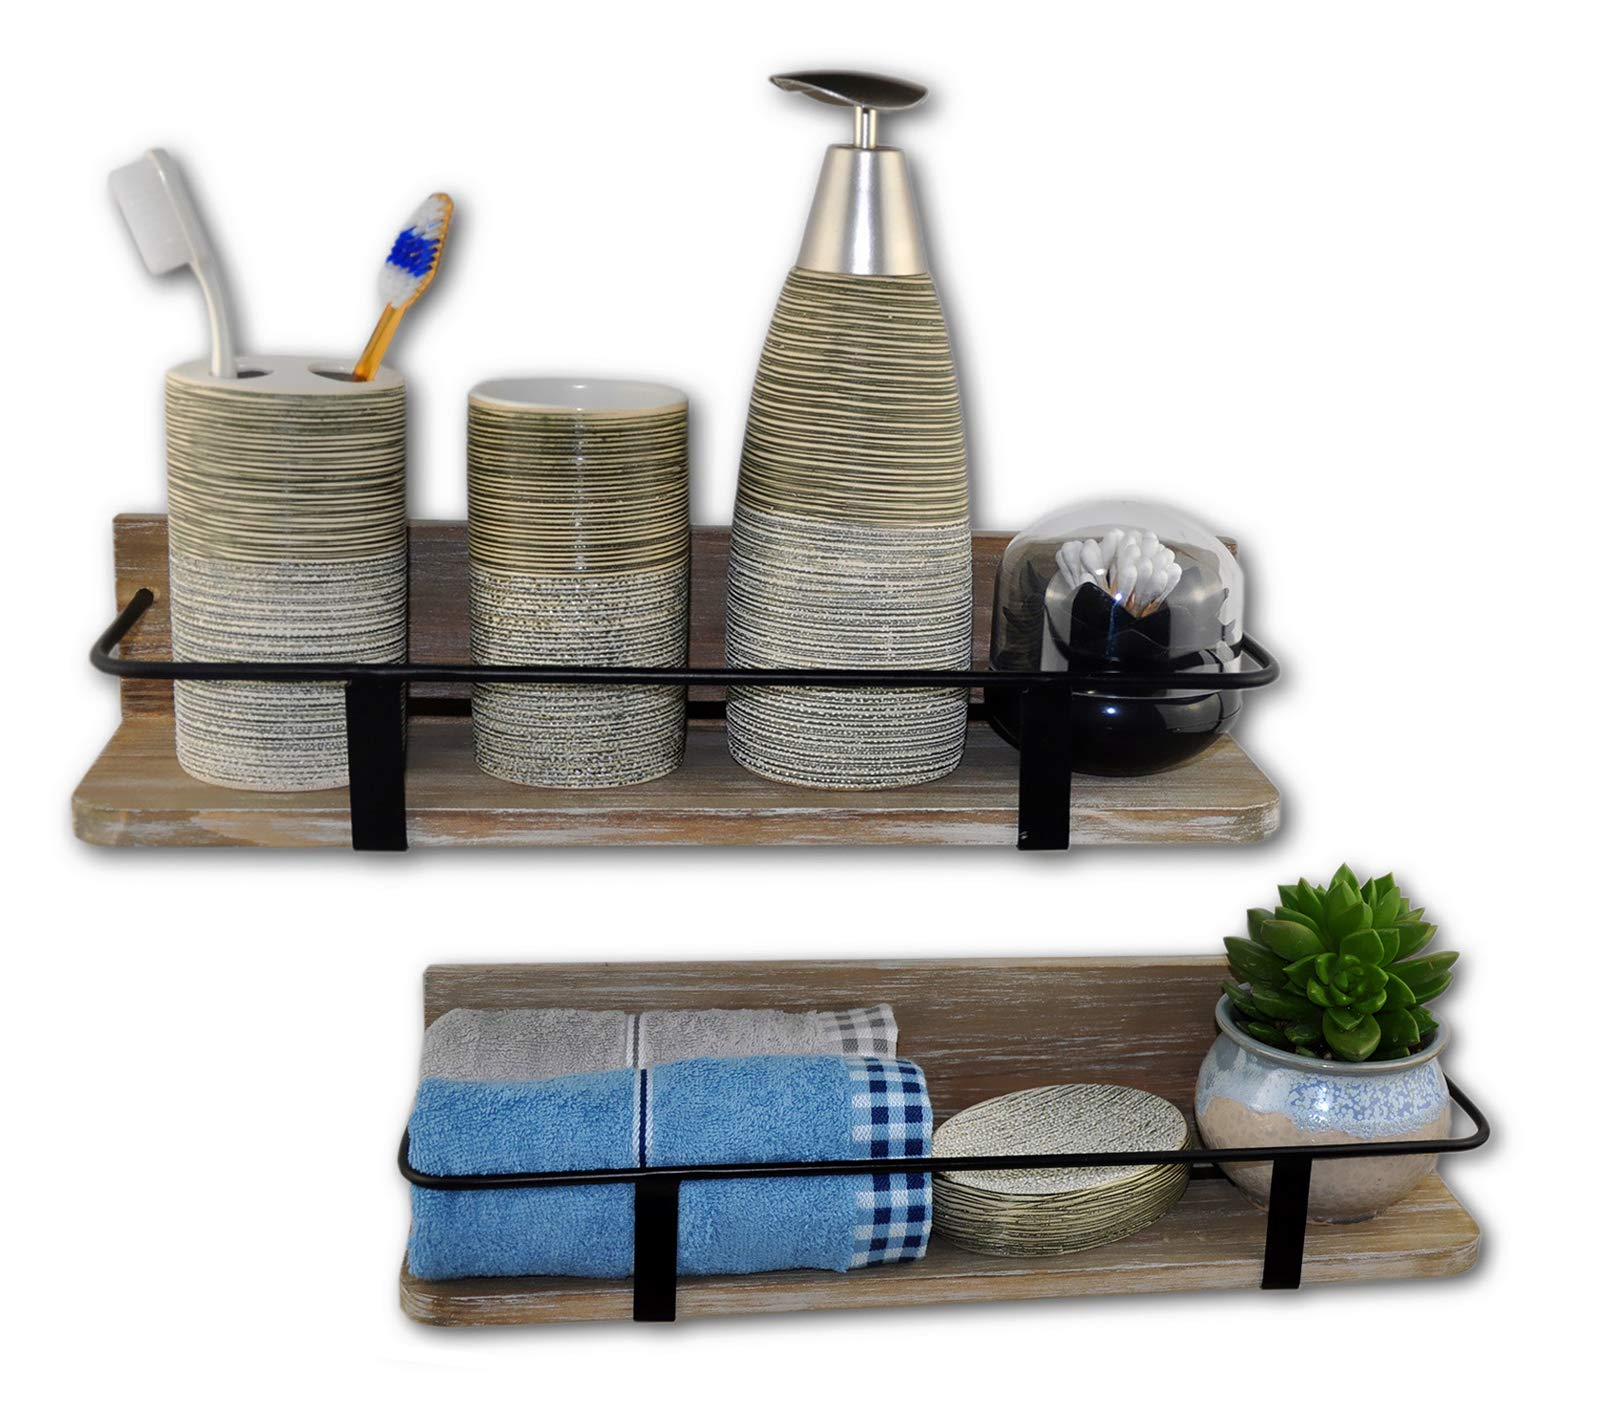 "Spiretro Set of 2 (Large & Small) Grey Wall Mount Floating Shelves Rustic Torched Wood Espresso Black Metal Rail Storage Organize and Display for Living Room Bedroom Kitchen Room Bathroom Closet - Store and organize your little bottles or jars, and display meaningful or useful trinkets, books, picture frames, bath accessories (tumbler, soap dispenser pump, toothbrush holder, Soap Dish, towel). A great way to clear the clutter, enhance the style and design in any rooms. Handy craft rustic torched wood and industrial metal bars blends to create a country piece with a modern feel.***Rustic Color maybe variance from picture due to hand painting & fire torched from natural wood. Perfect size to build on wall. Approximate Dimensions (in inches): Large 16.5"" W x 5"" D x 3.5"" H; Small 14"" W x 4"" D x 3"" H. - wall-shelves, living-room-furniture, living-room - 716 RIDhSML -"